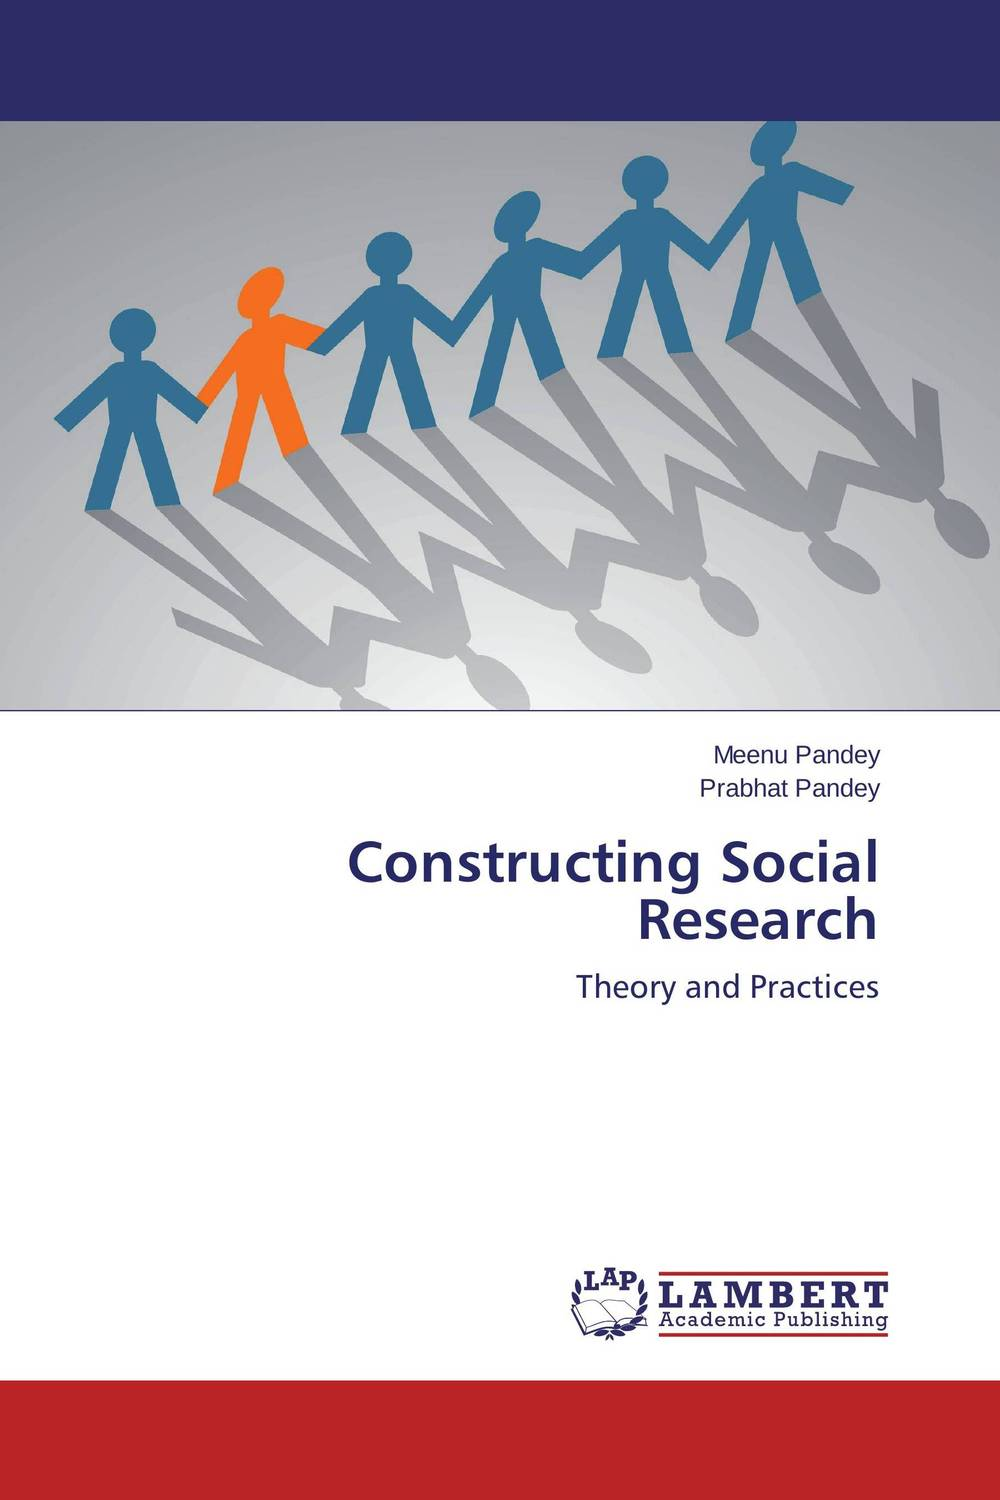 Constructing Social Research meenu pandey and prabhat pandey constructing social research